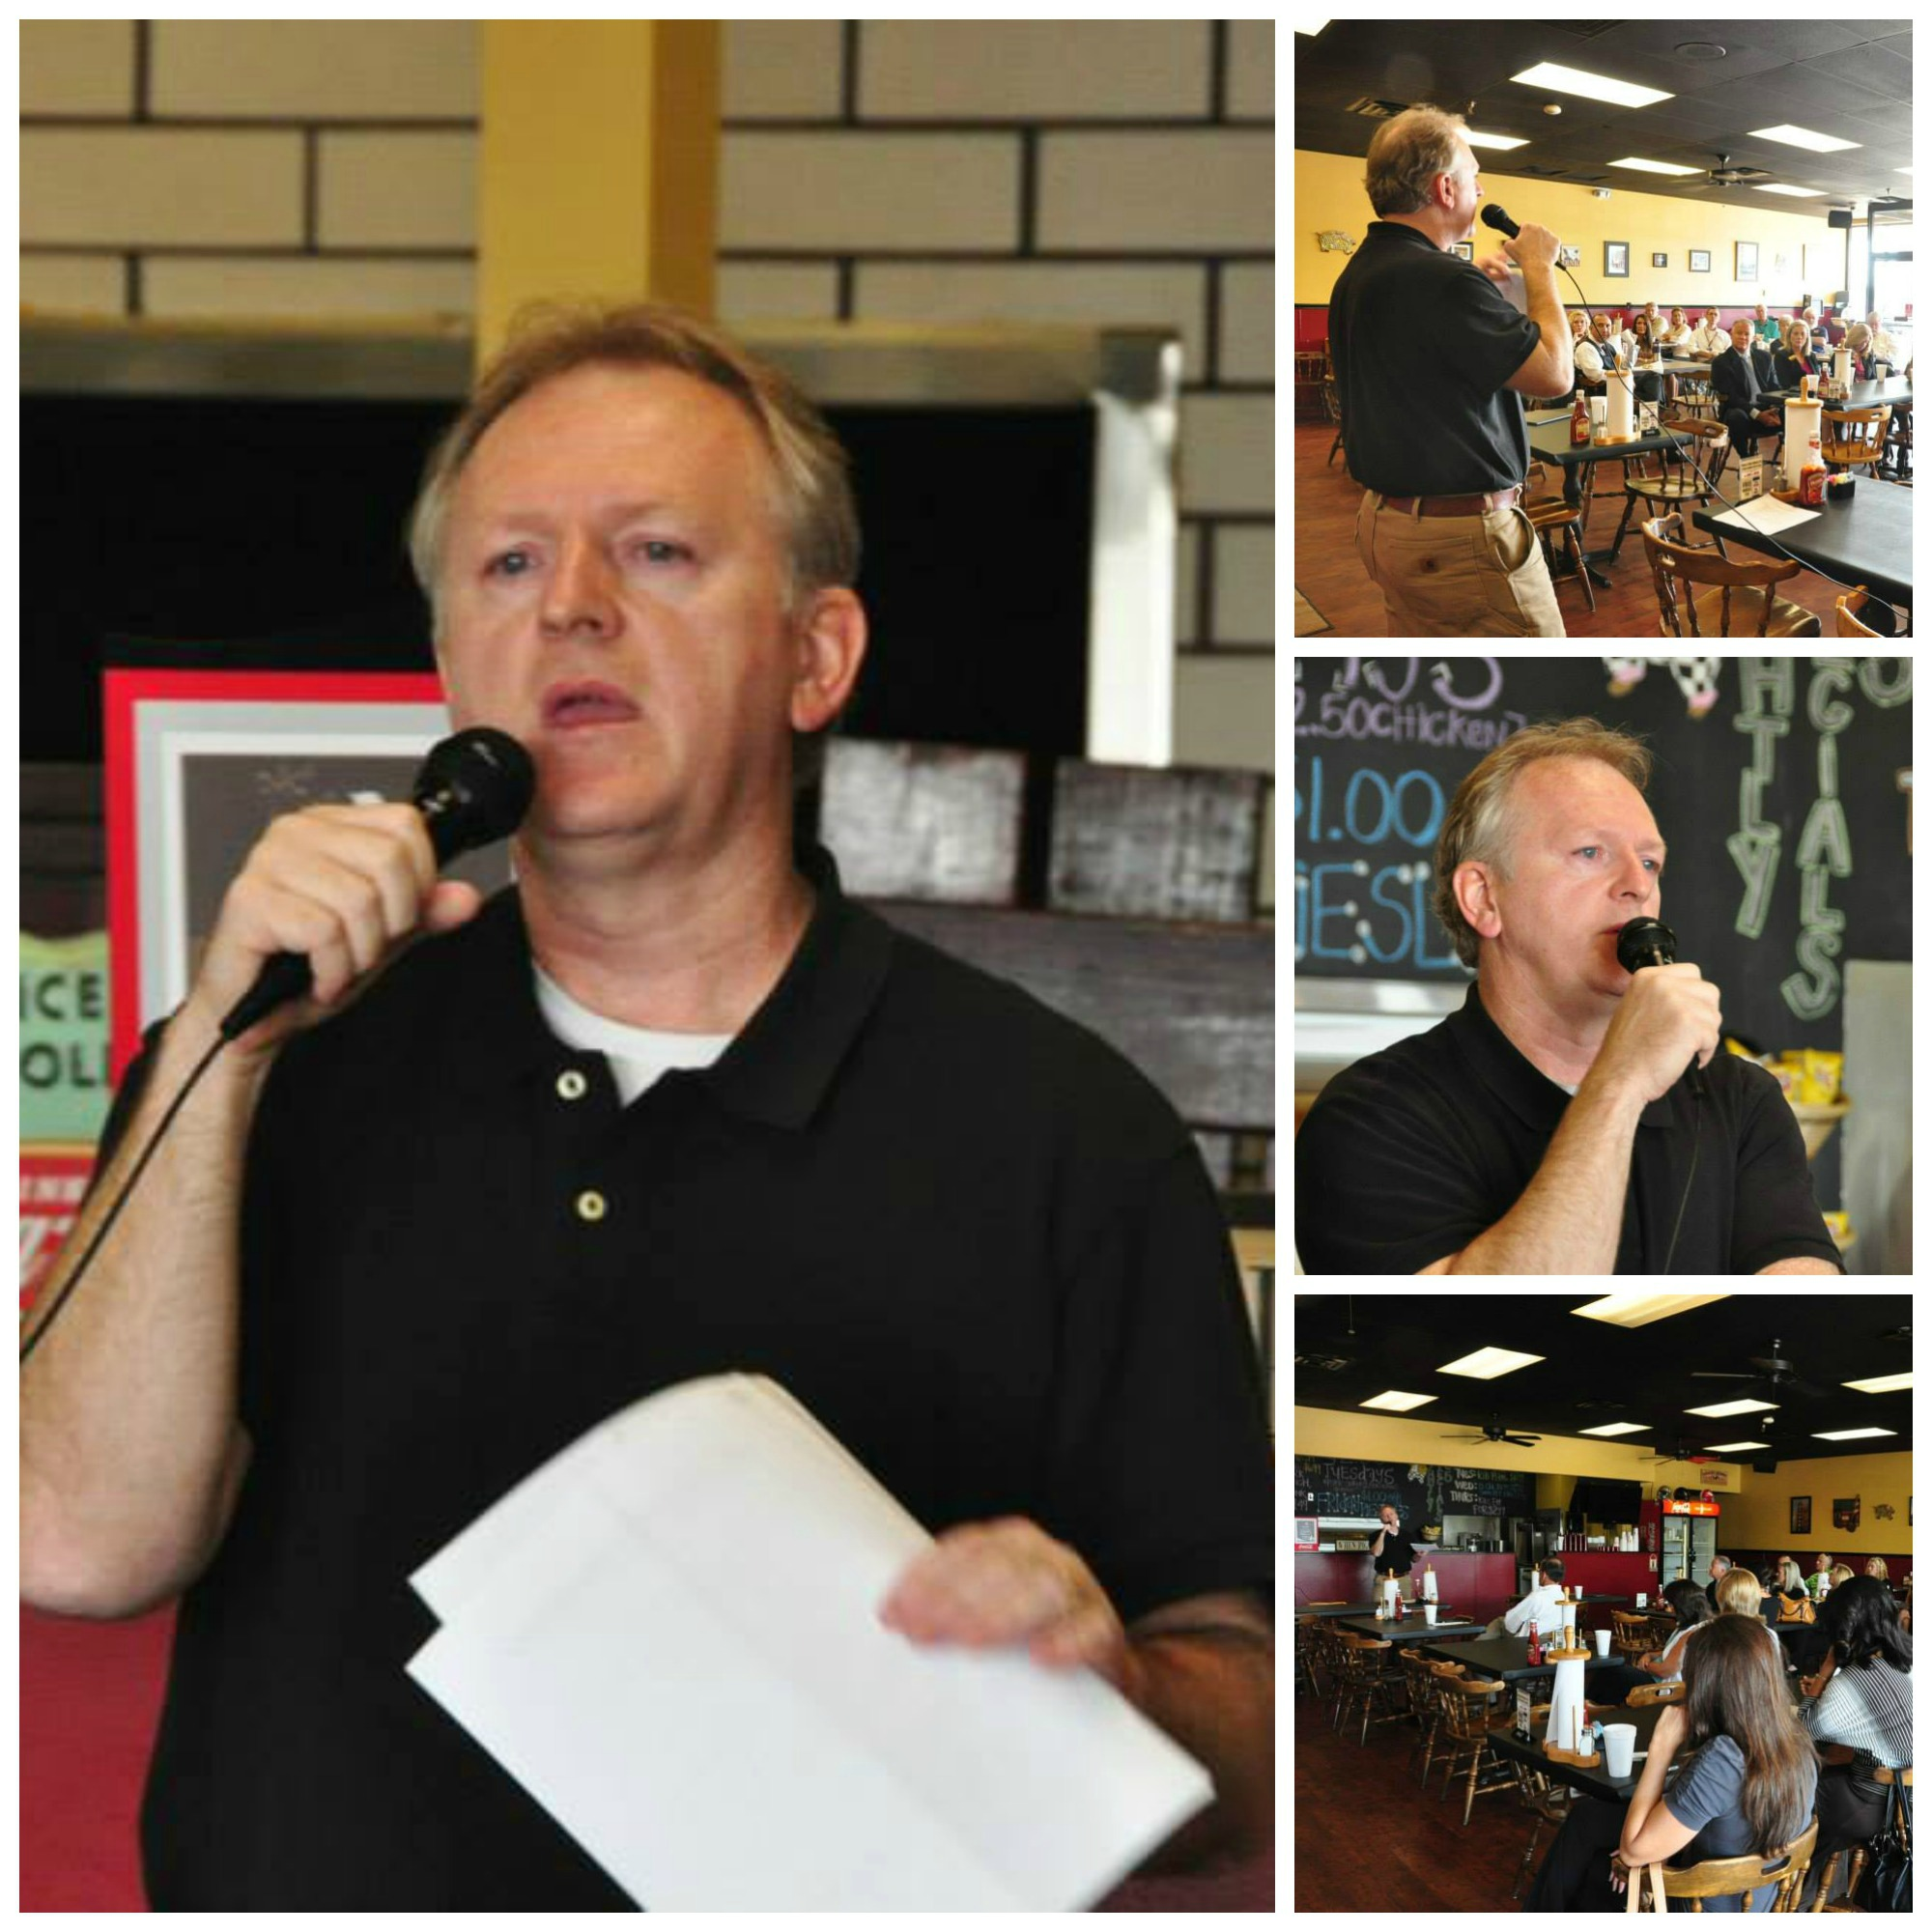 B K Kirby Real Estate Real Estate Appraisals: If You Need A Speaker At Your Real Estate Sales Meeting, I